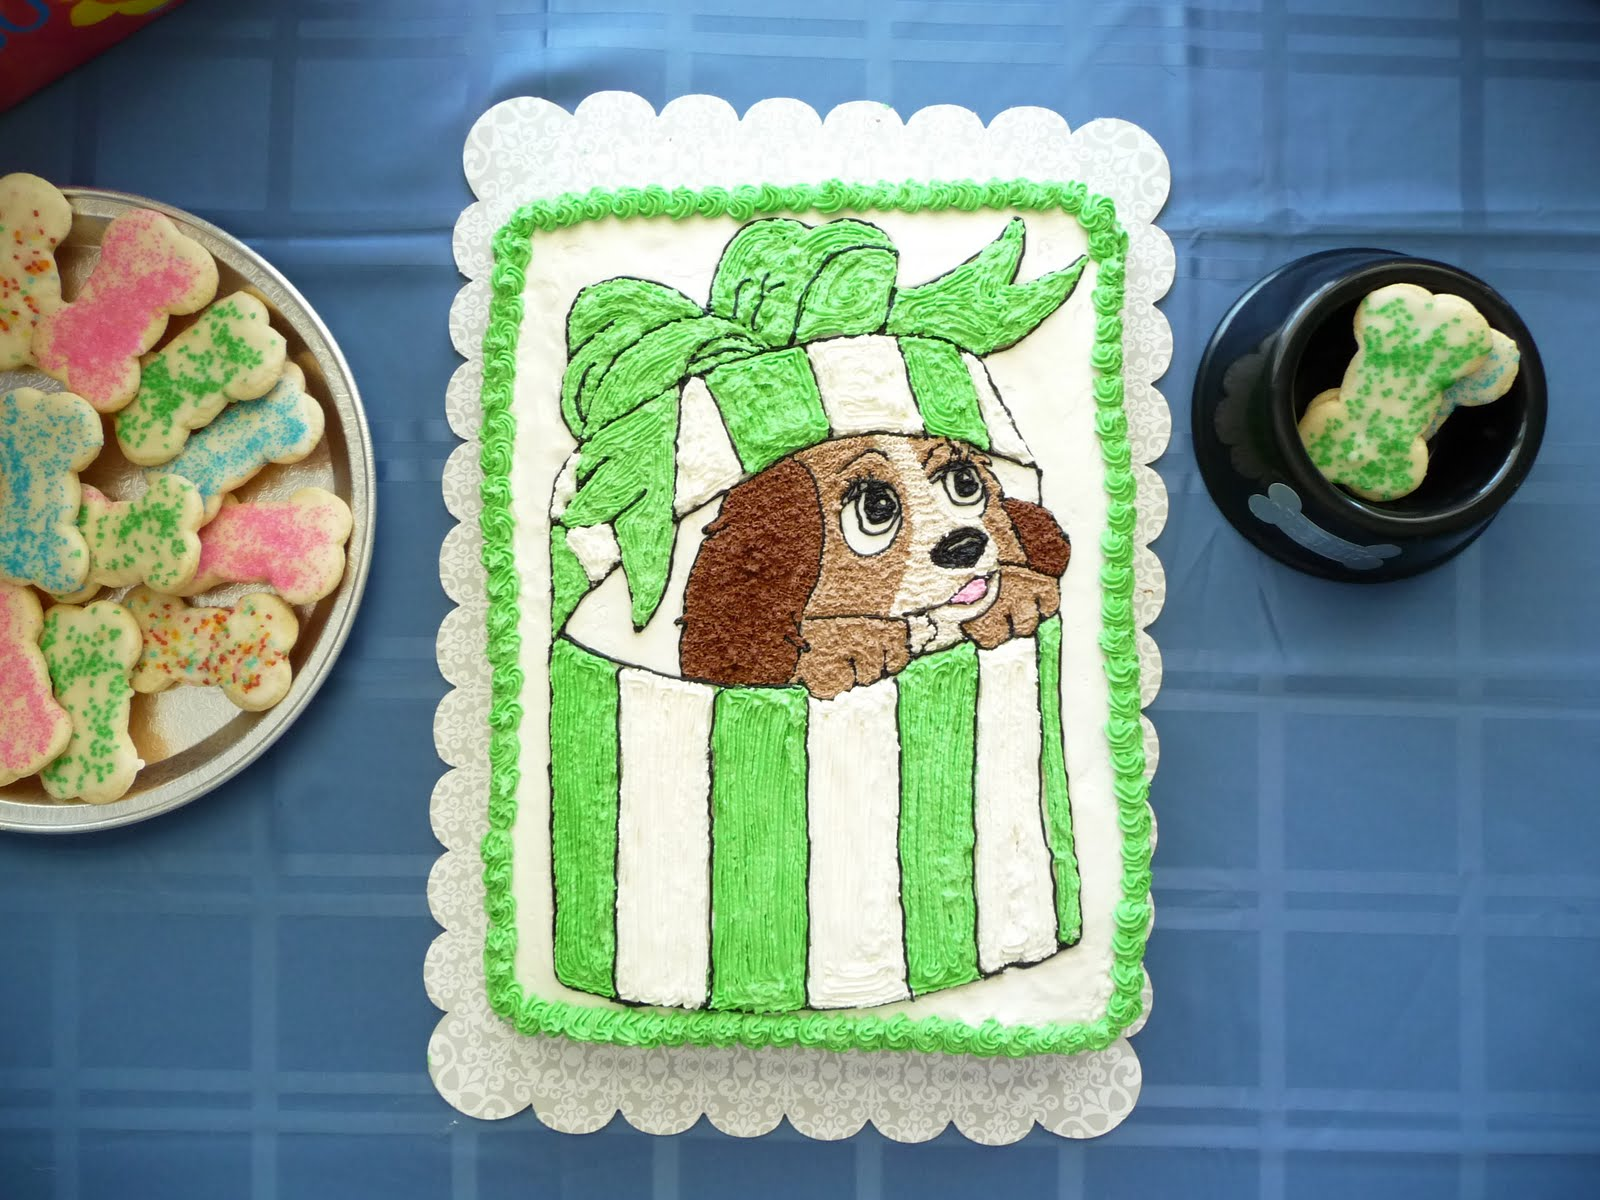 Family, Food, and Fun: Lady and the Tramp Cake